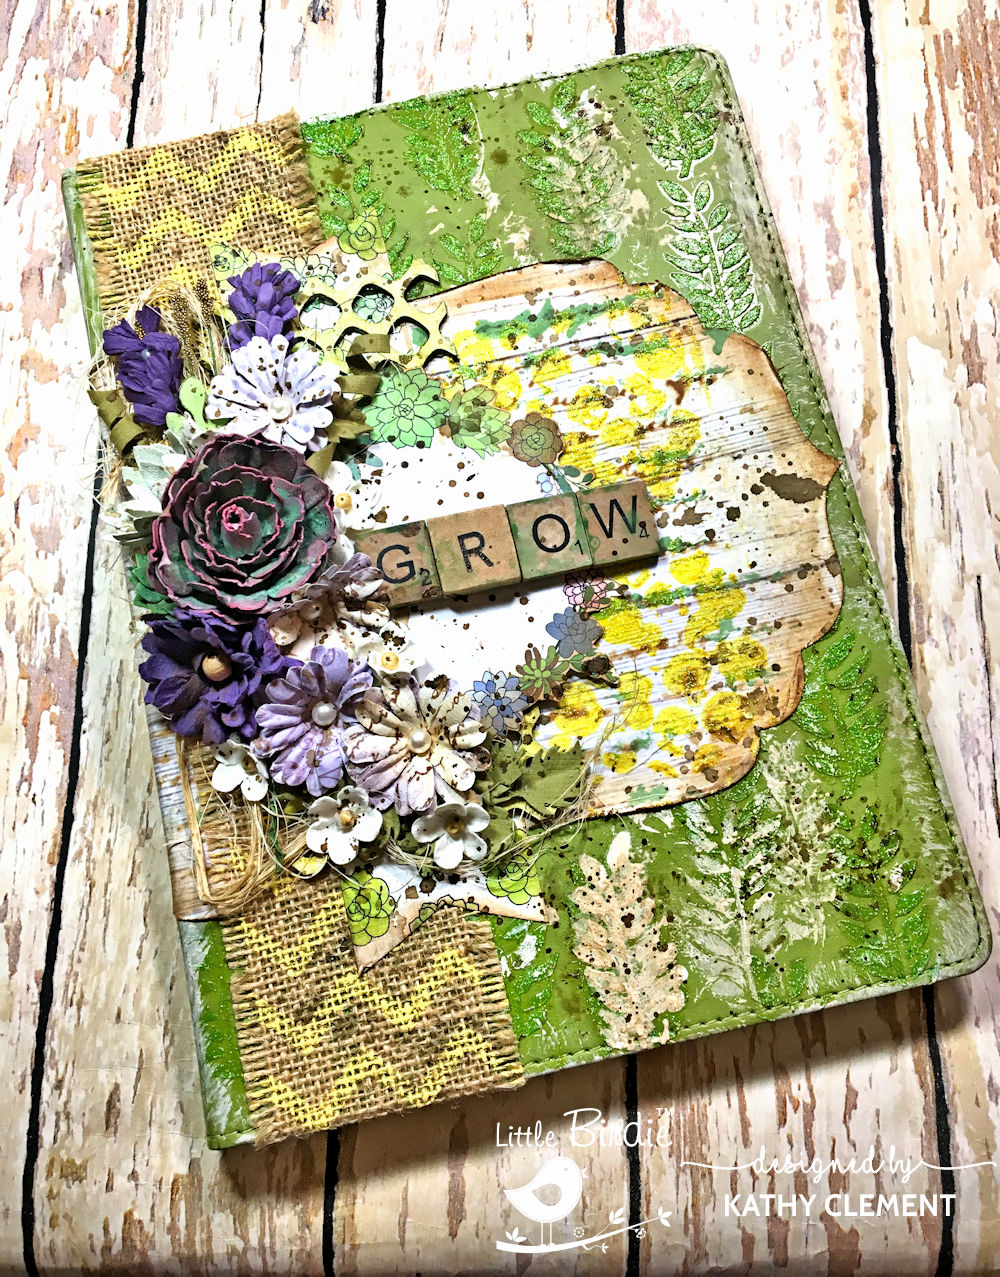 Grow Gardener's Mixed Media Altered Journal Succulent Garden by Kathy Clement Product by Little Birdie Crafts Photo 01